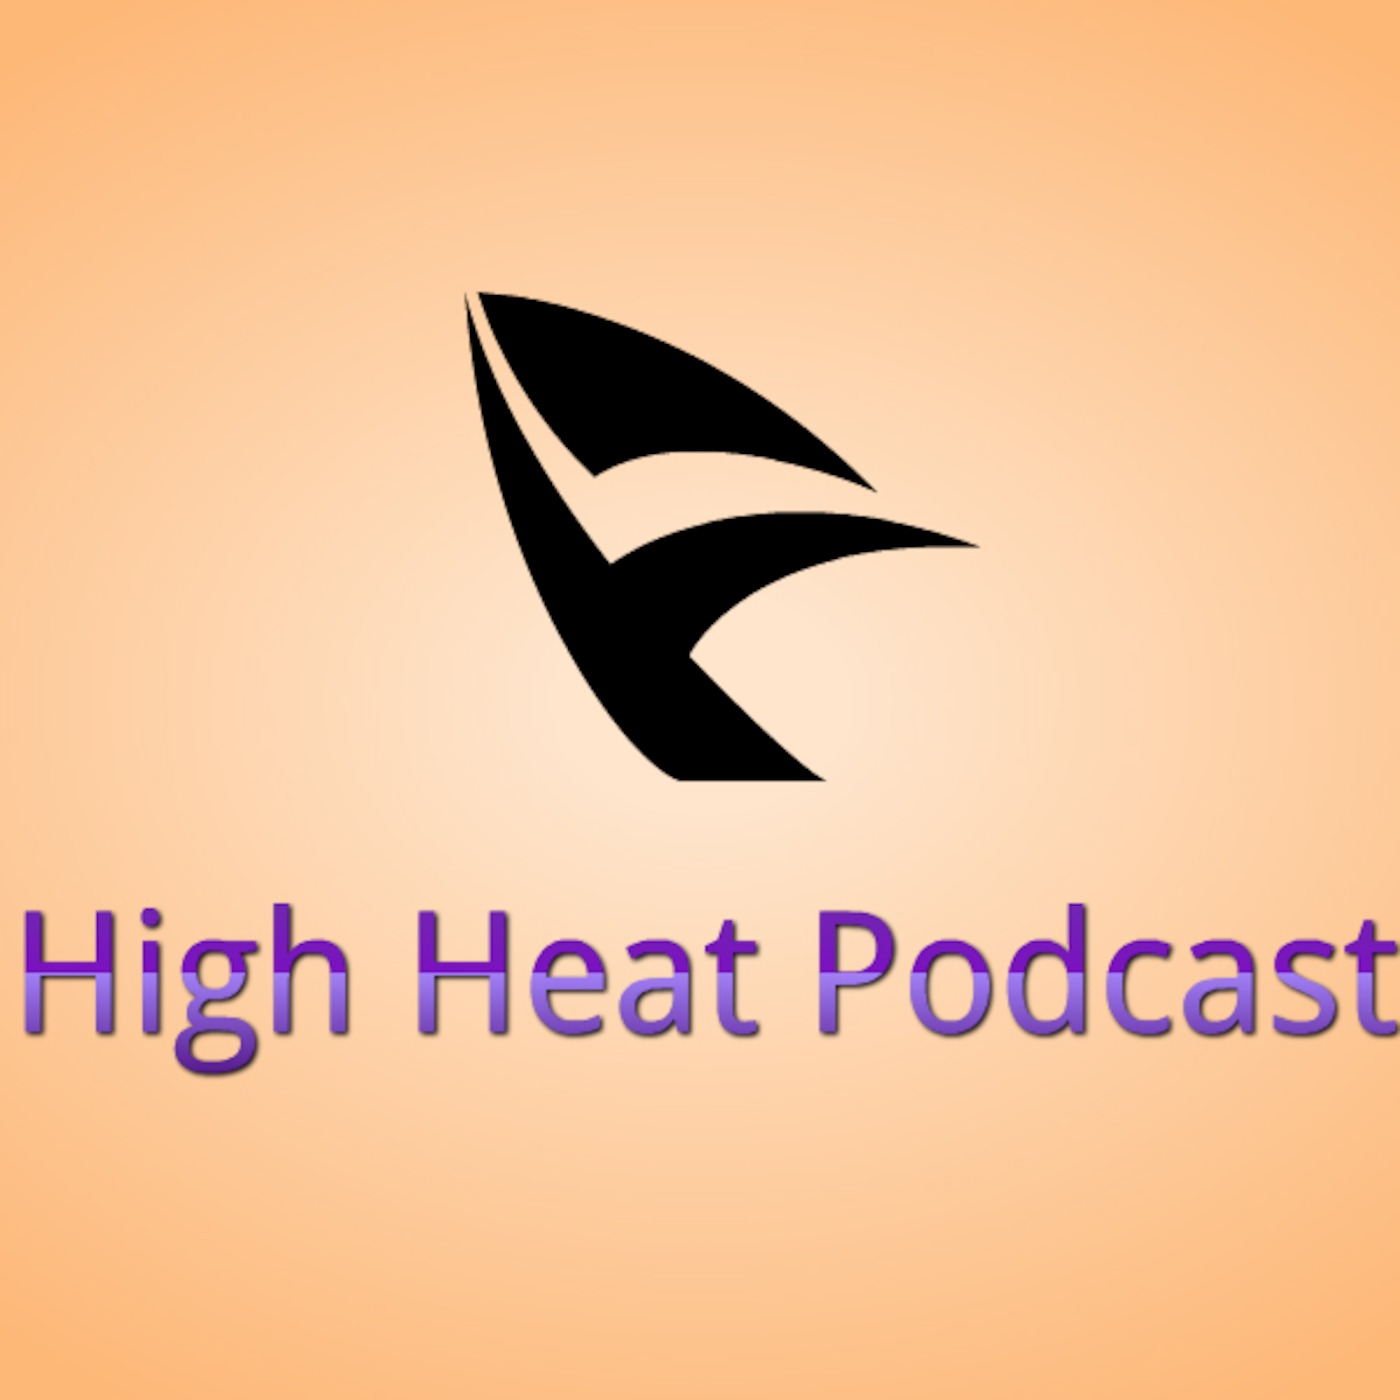 High Heat Podcast's Podcast